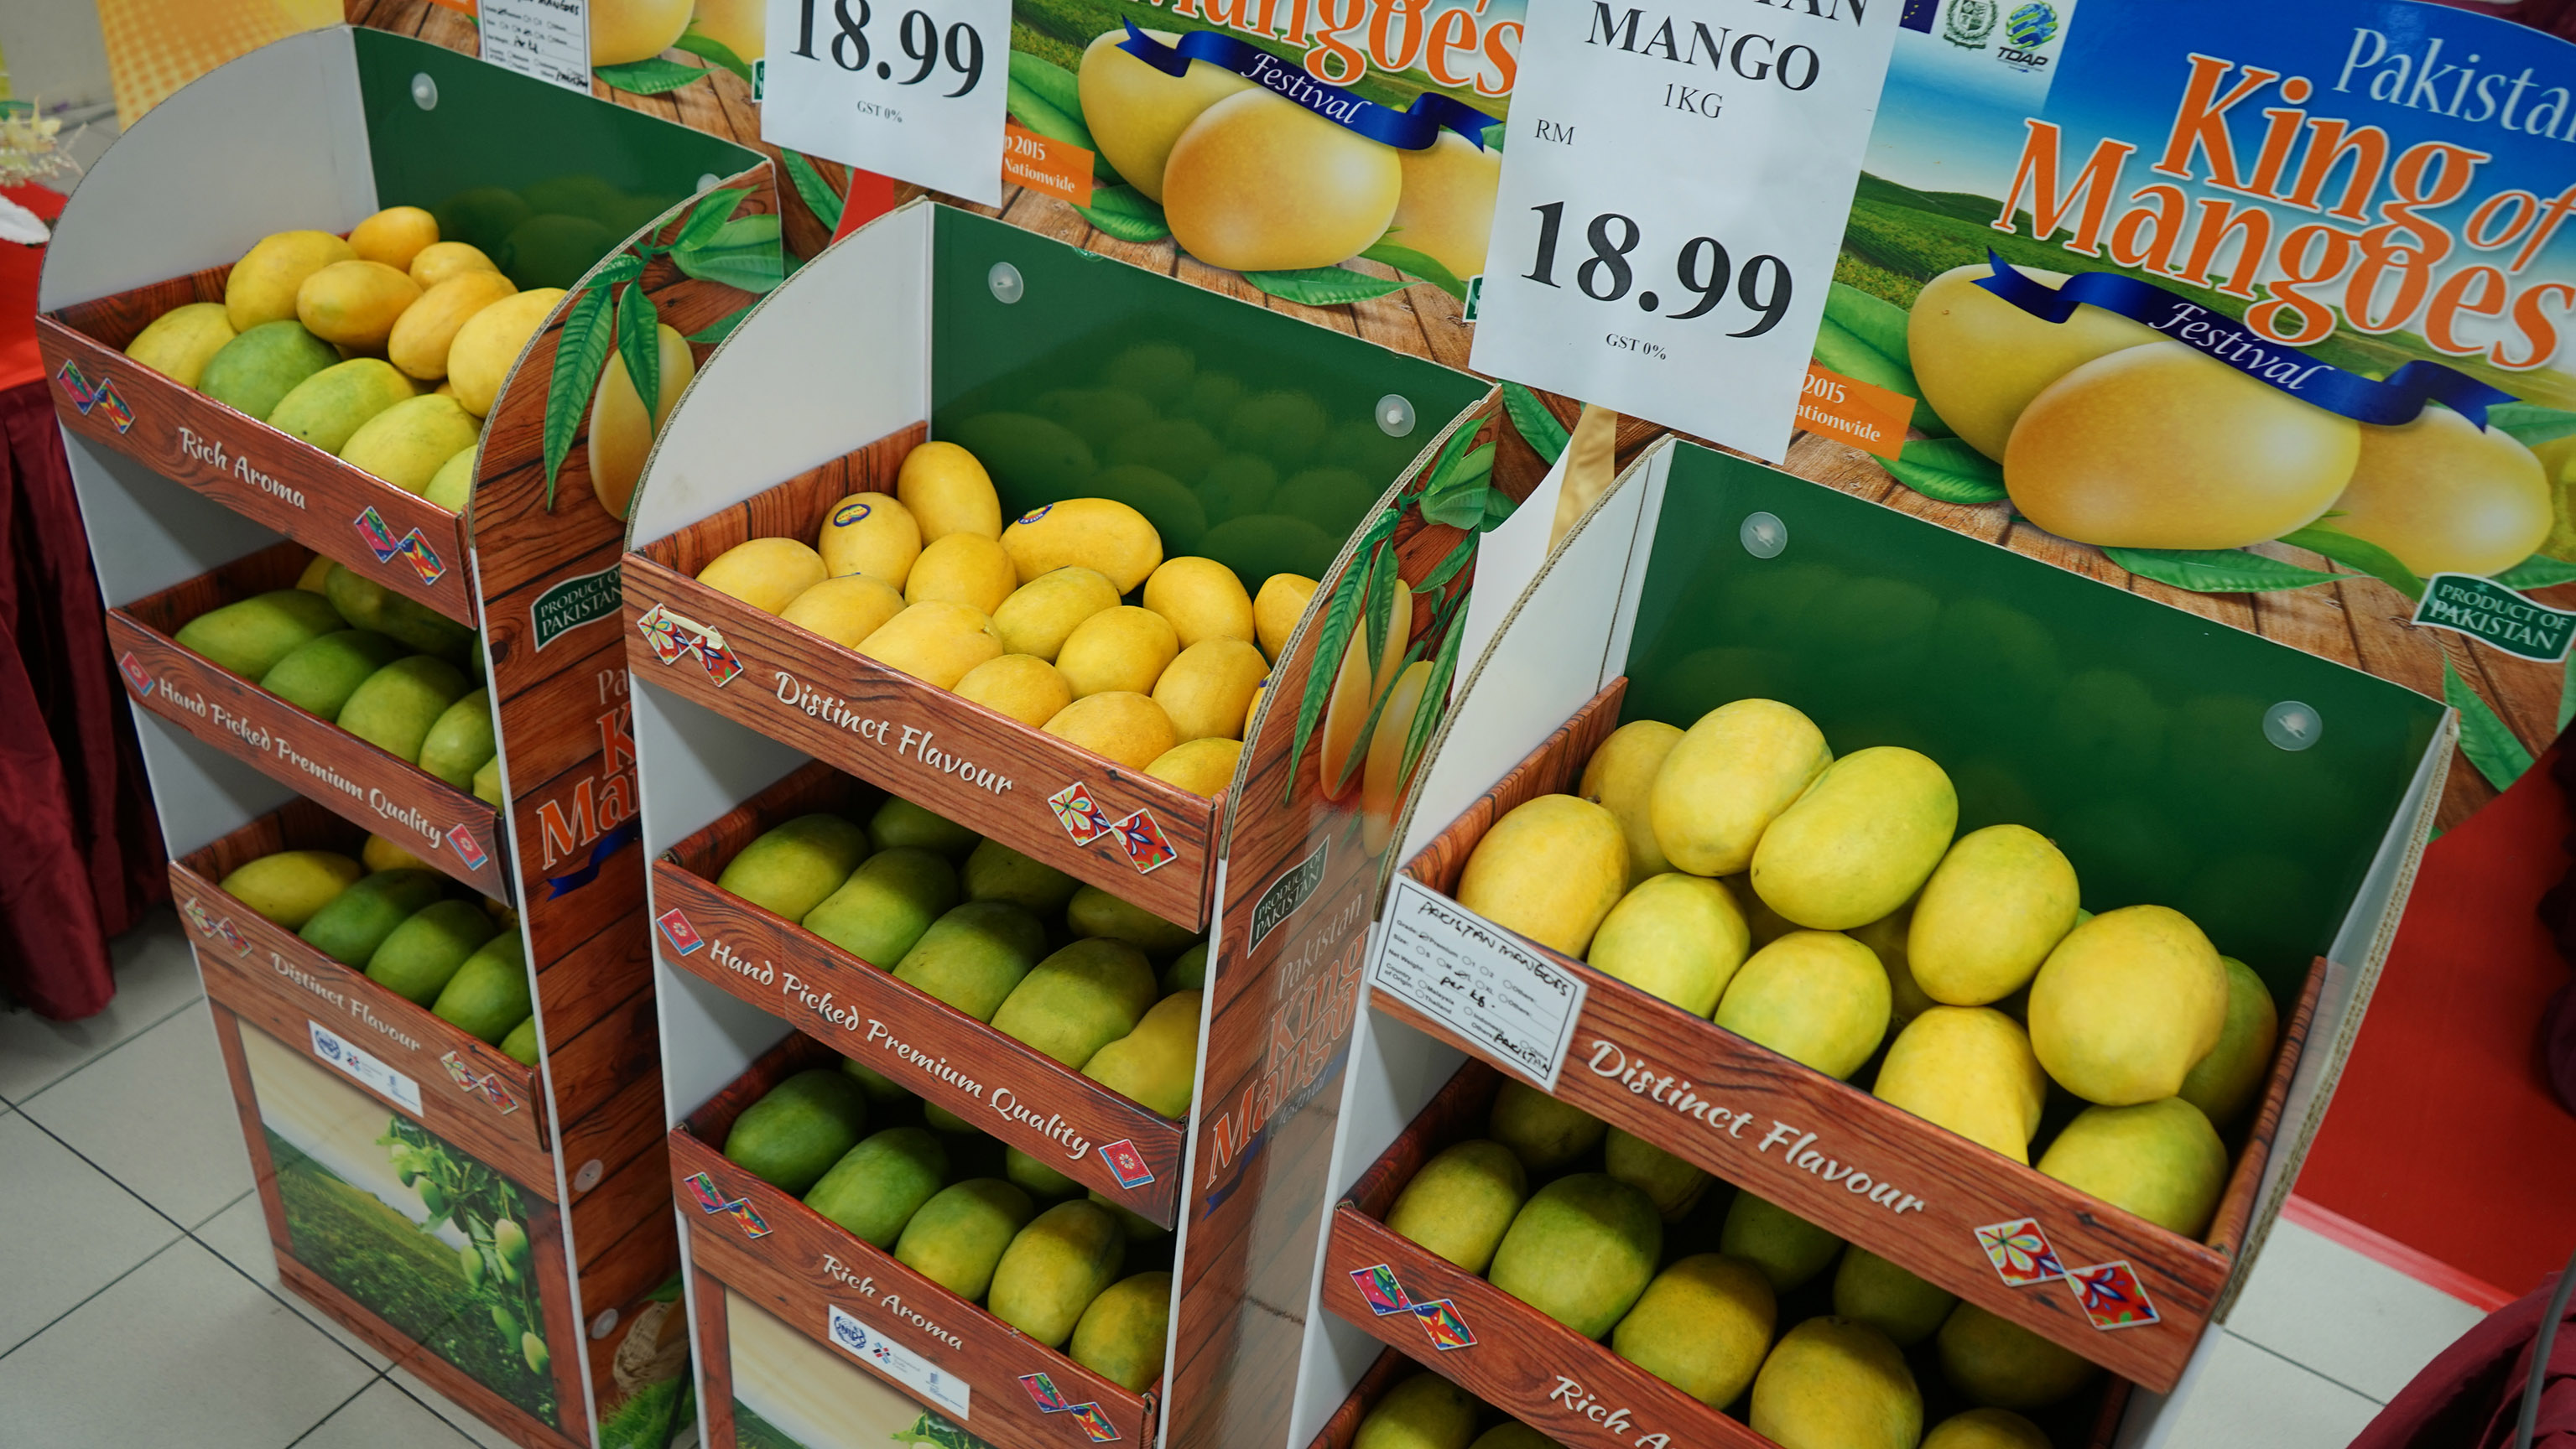 Pakistan mangoes for sale at the pavilion.